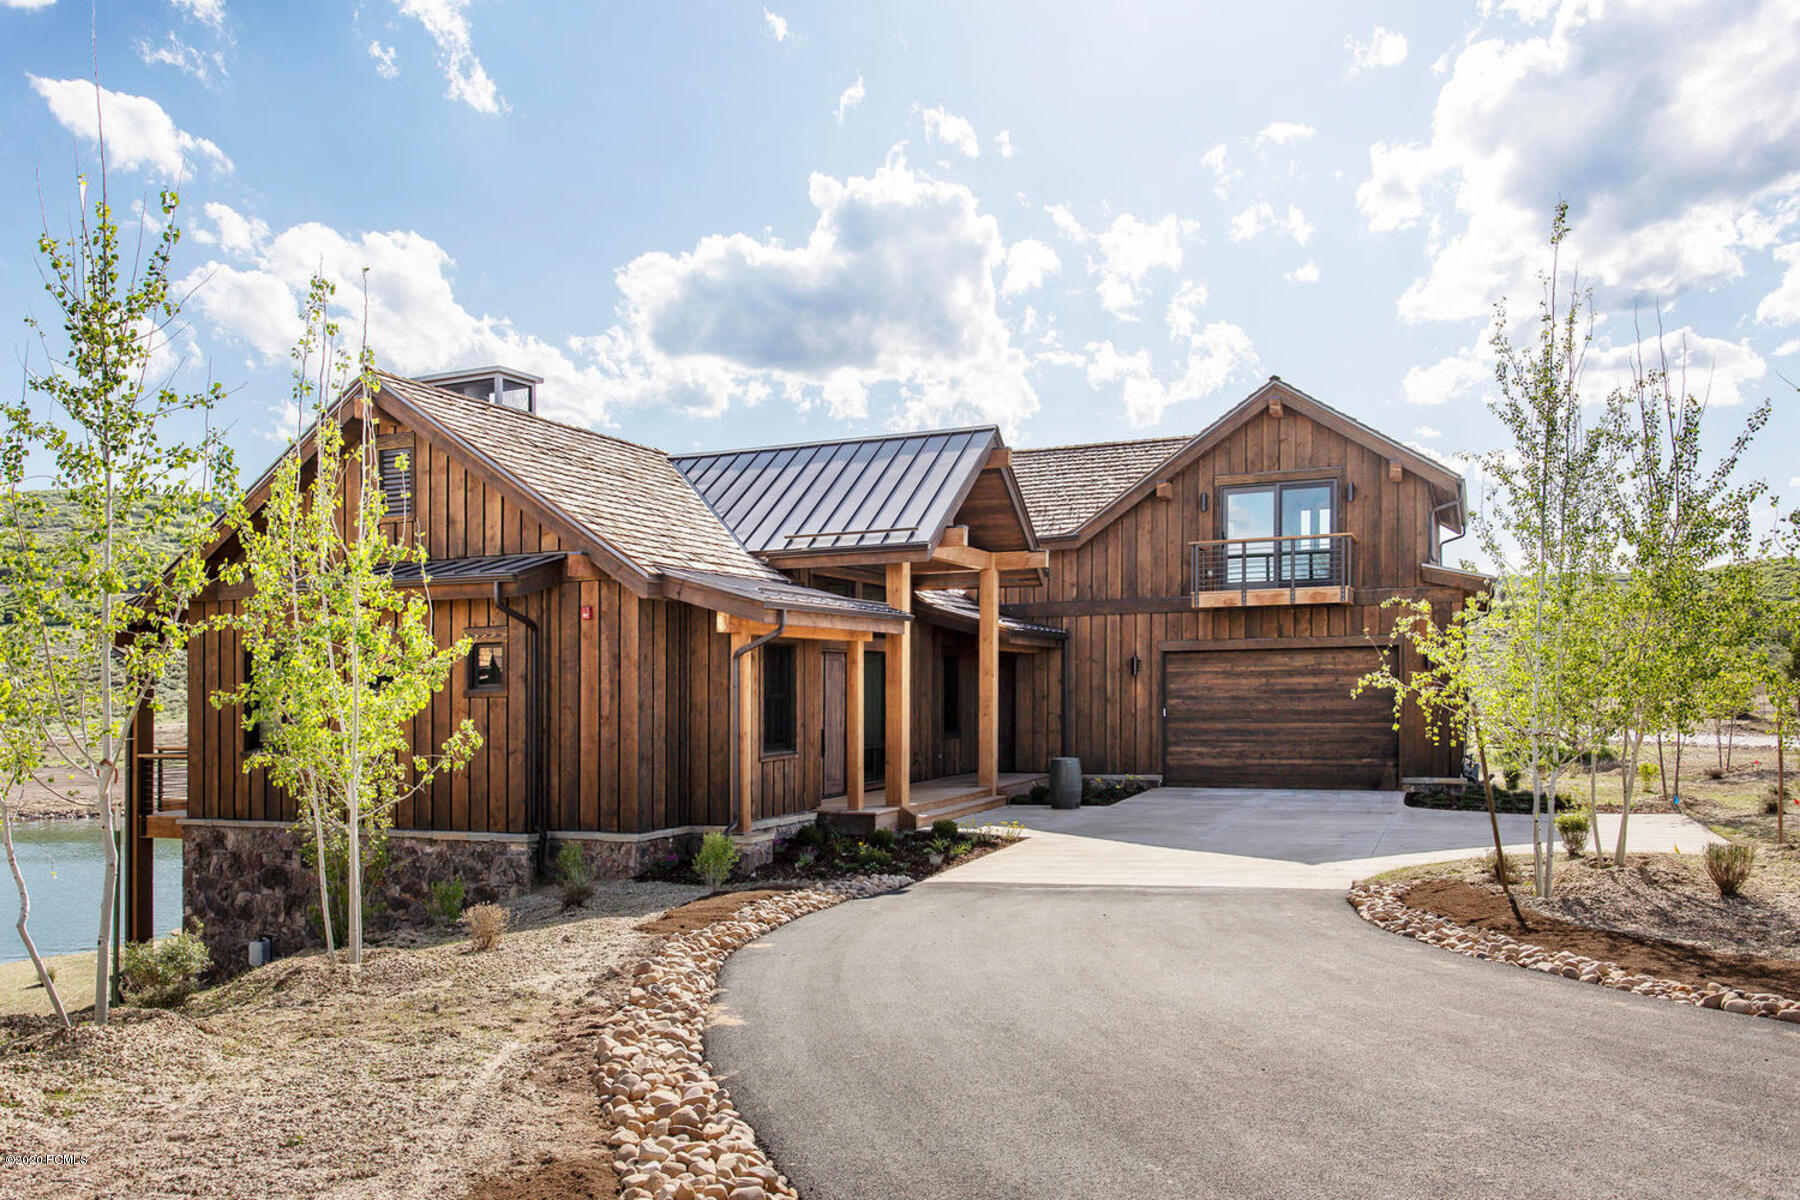 6512 Whispering Way, Lot #374, Heber City, Utah 84032, 5 Bedrooms Bedrooms, ,6 BathroomsBathrooms,Single Family,For Sale,Whispering Way, Lot #374,12003627